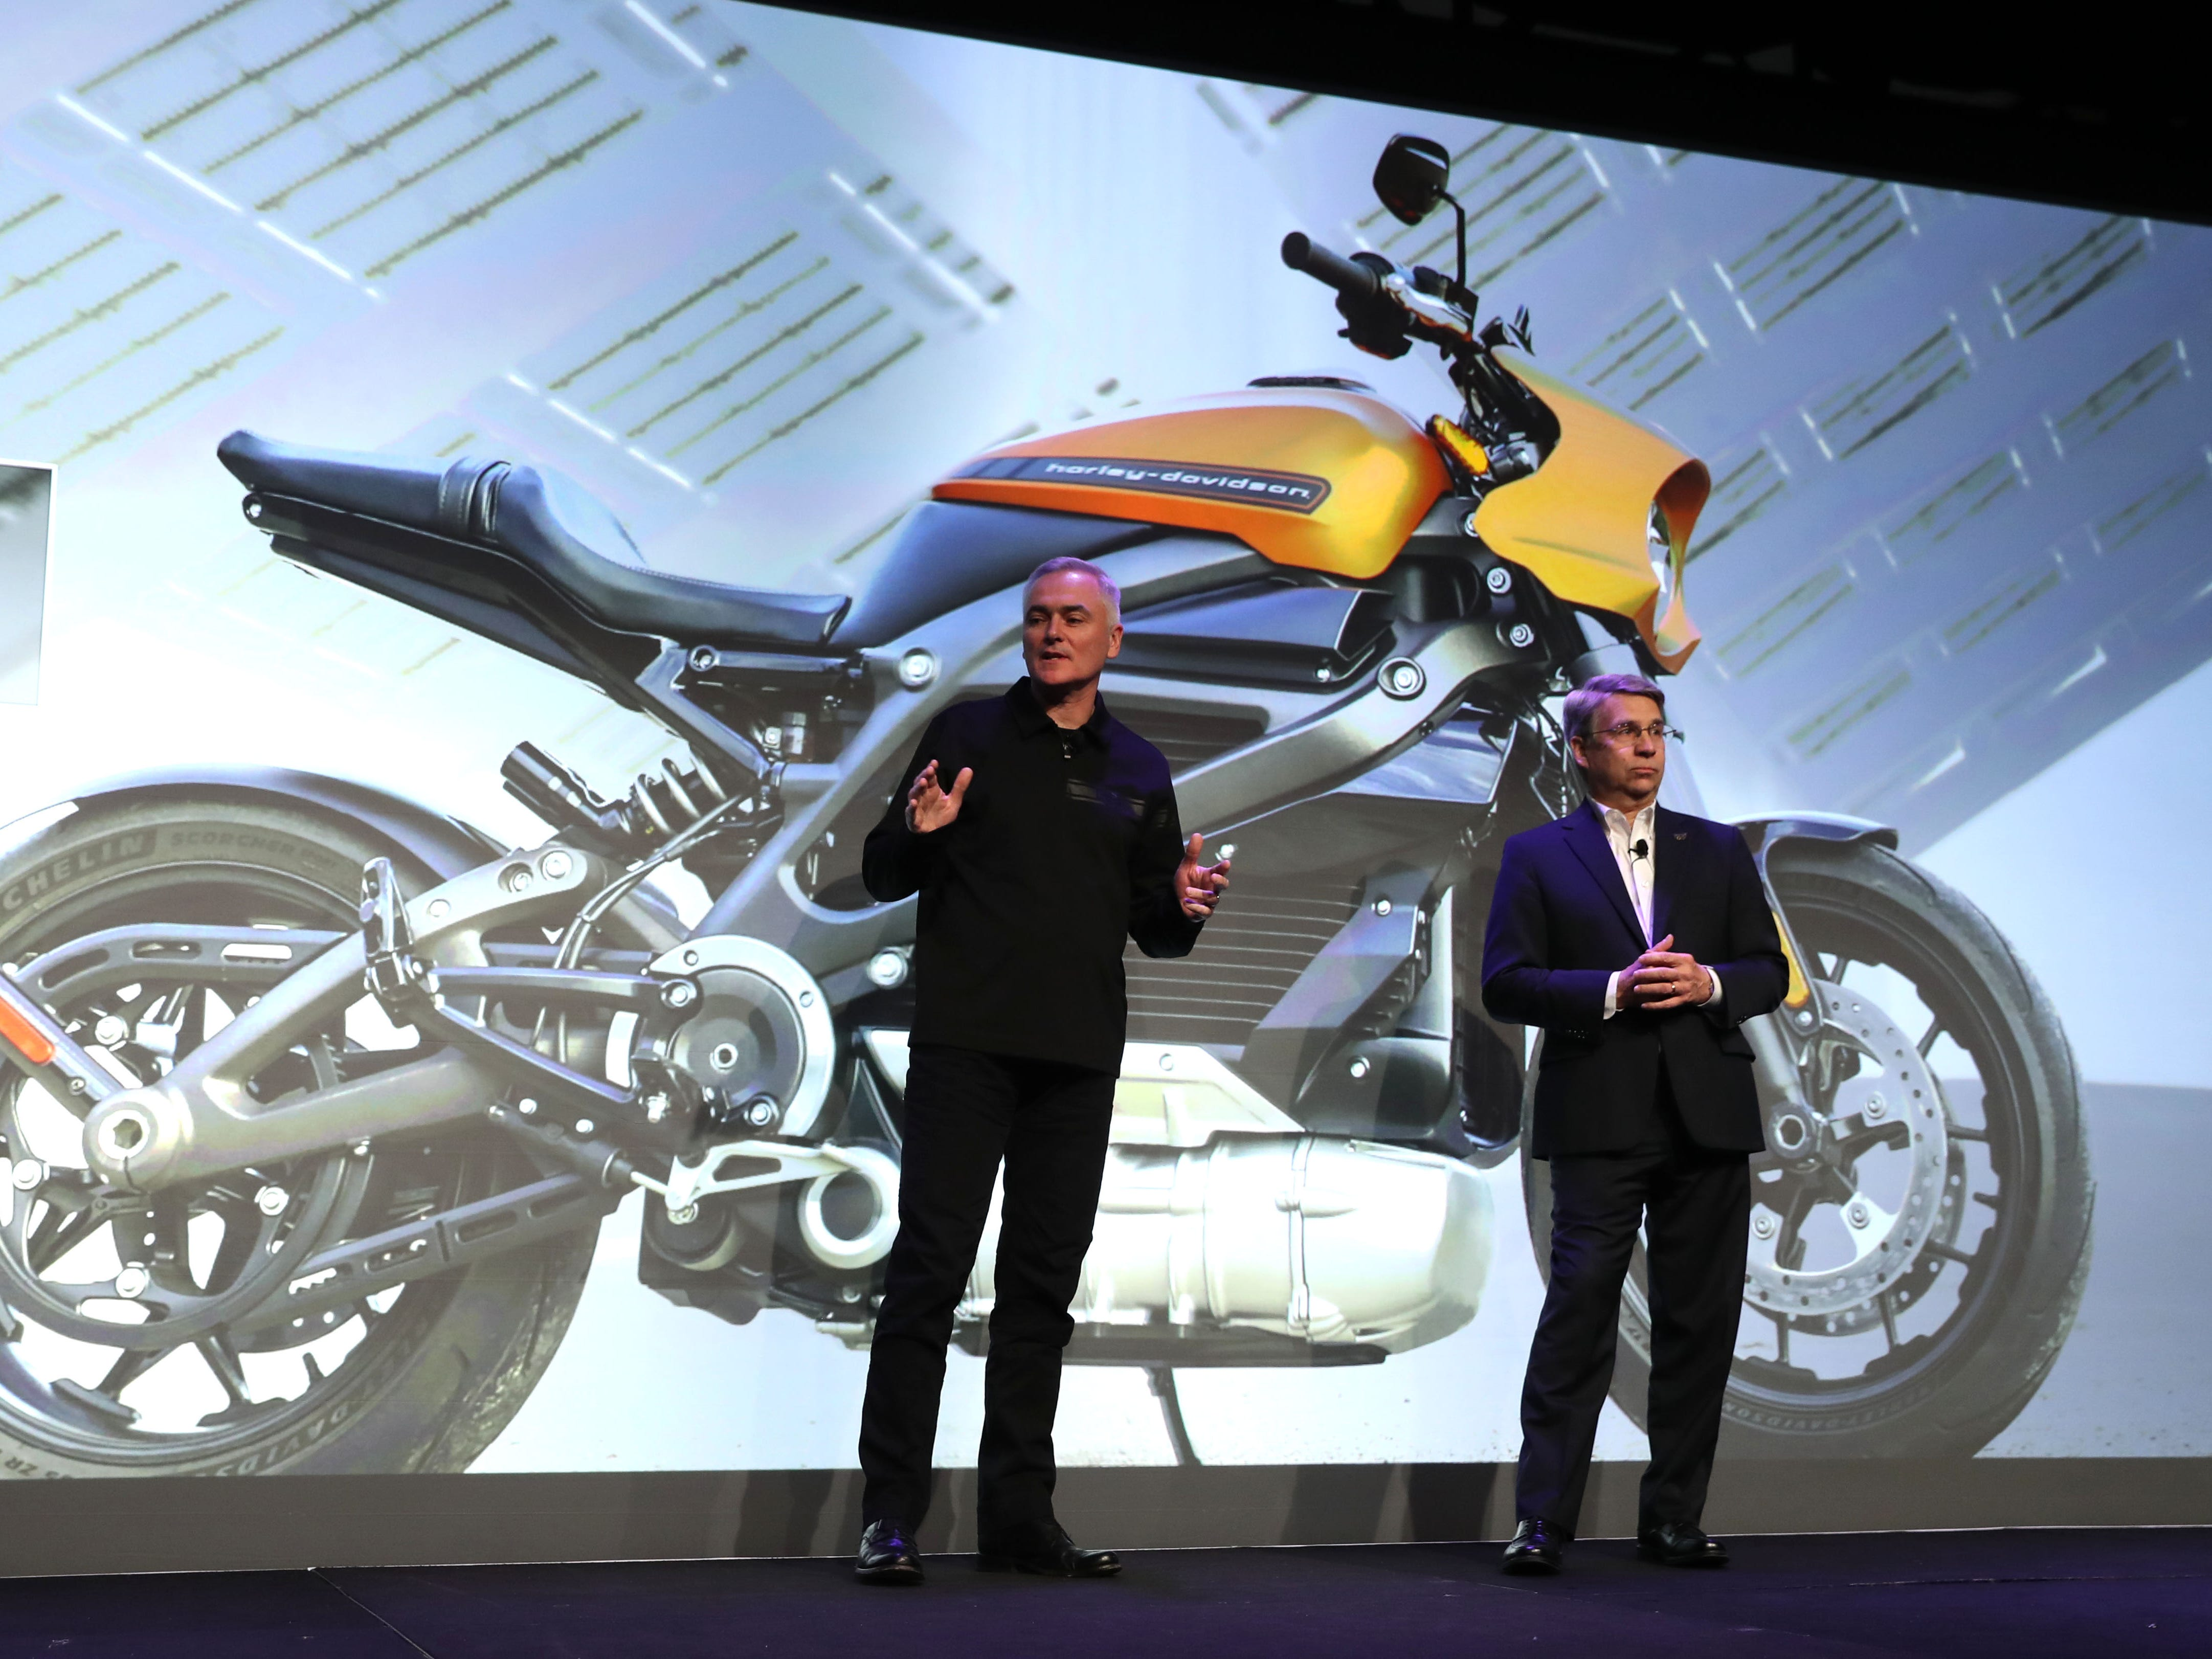 Marc McCallister, VP Consumer Portfolio Management with Harley Davidson talks about the the new Harley Davidson LiveWire electric motorcycle with Panasonic North America Chairman and CEO Tom Gebhardt.